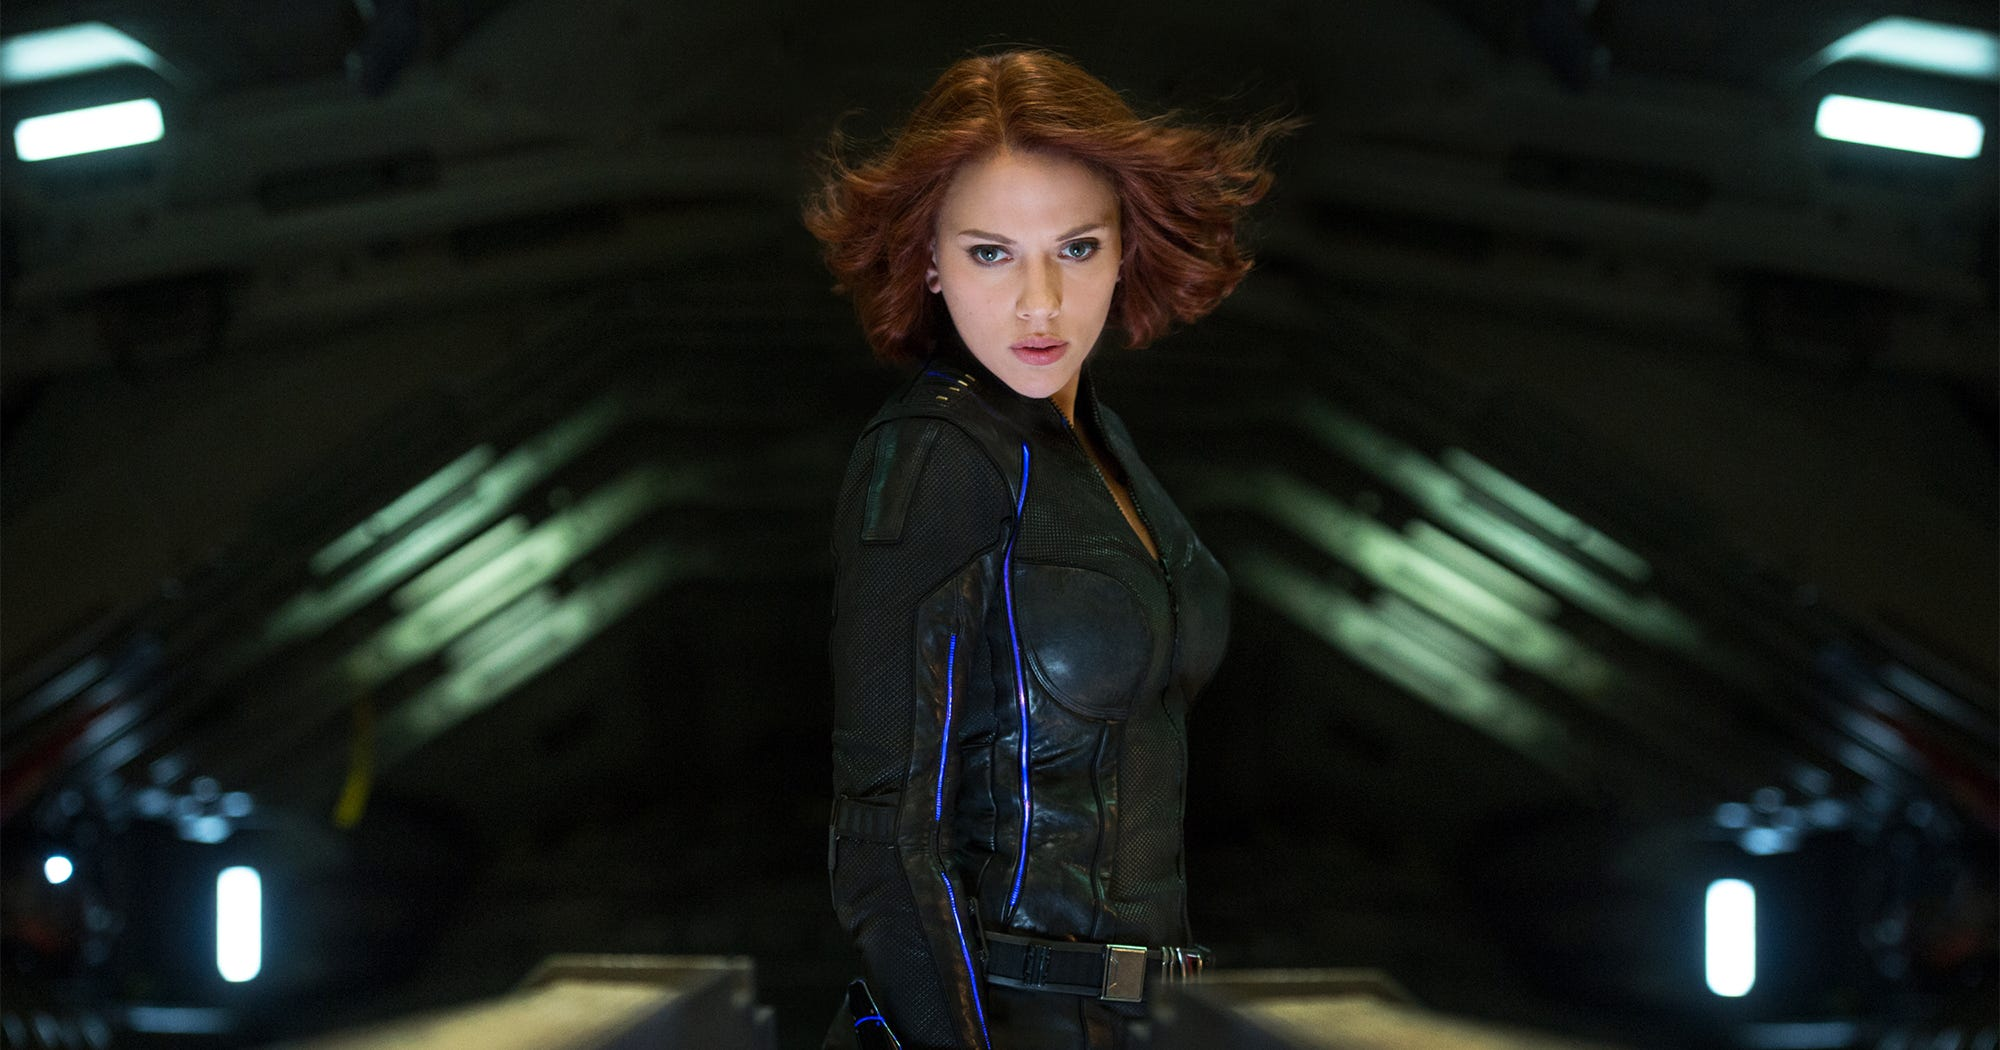 Is An All-Female Marvel Movie On The Way?